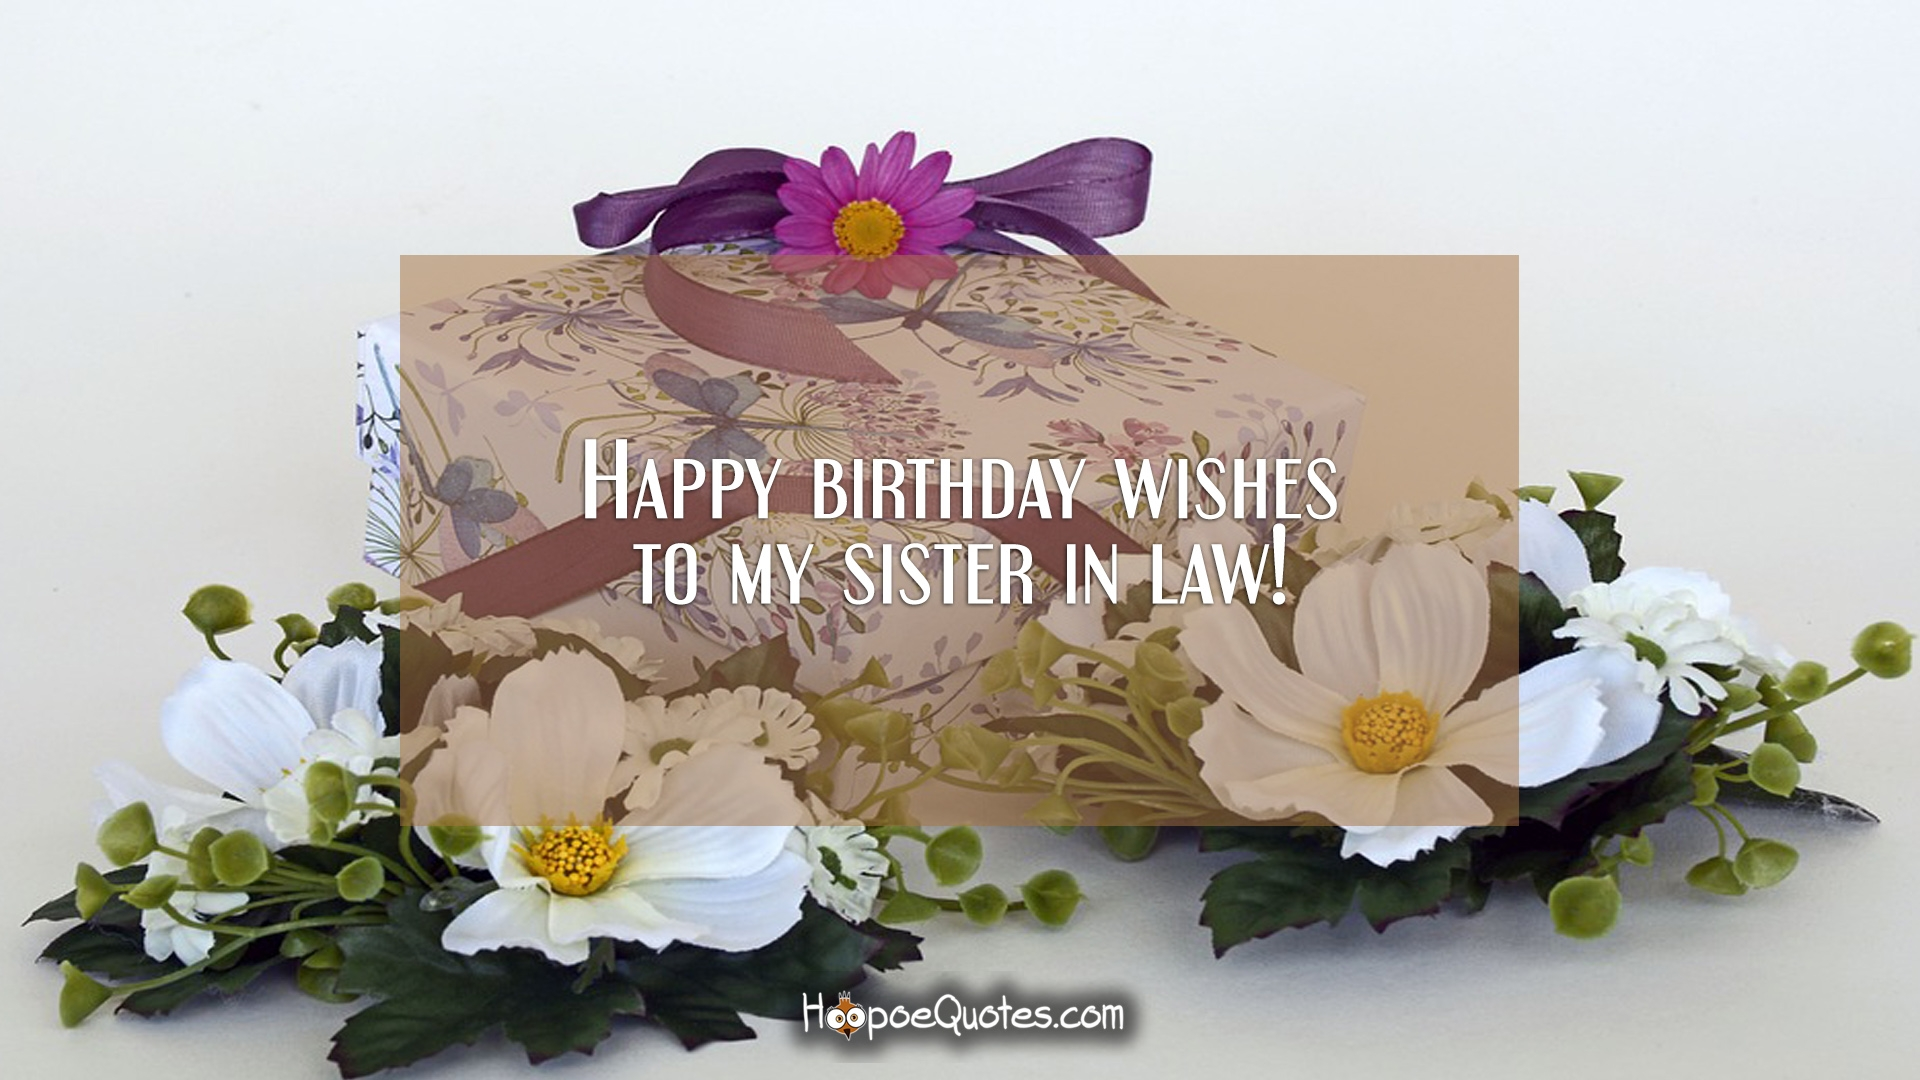 Happy Birthday Wishes To My Sister In Law Hoopoequotes